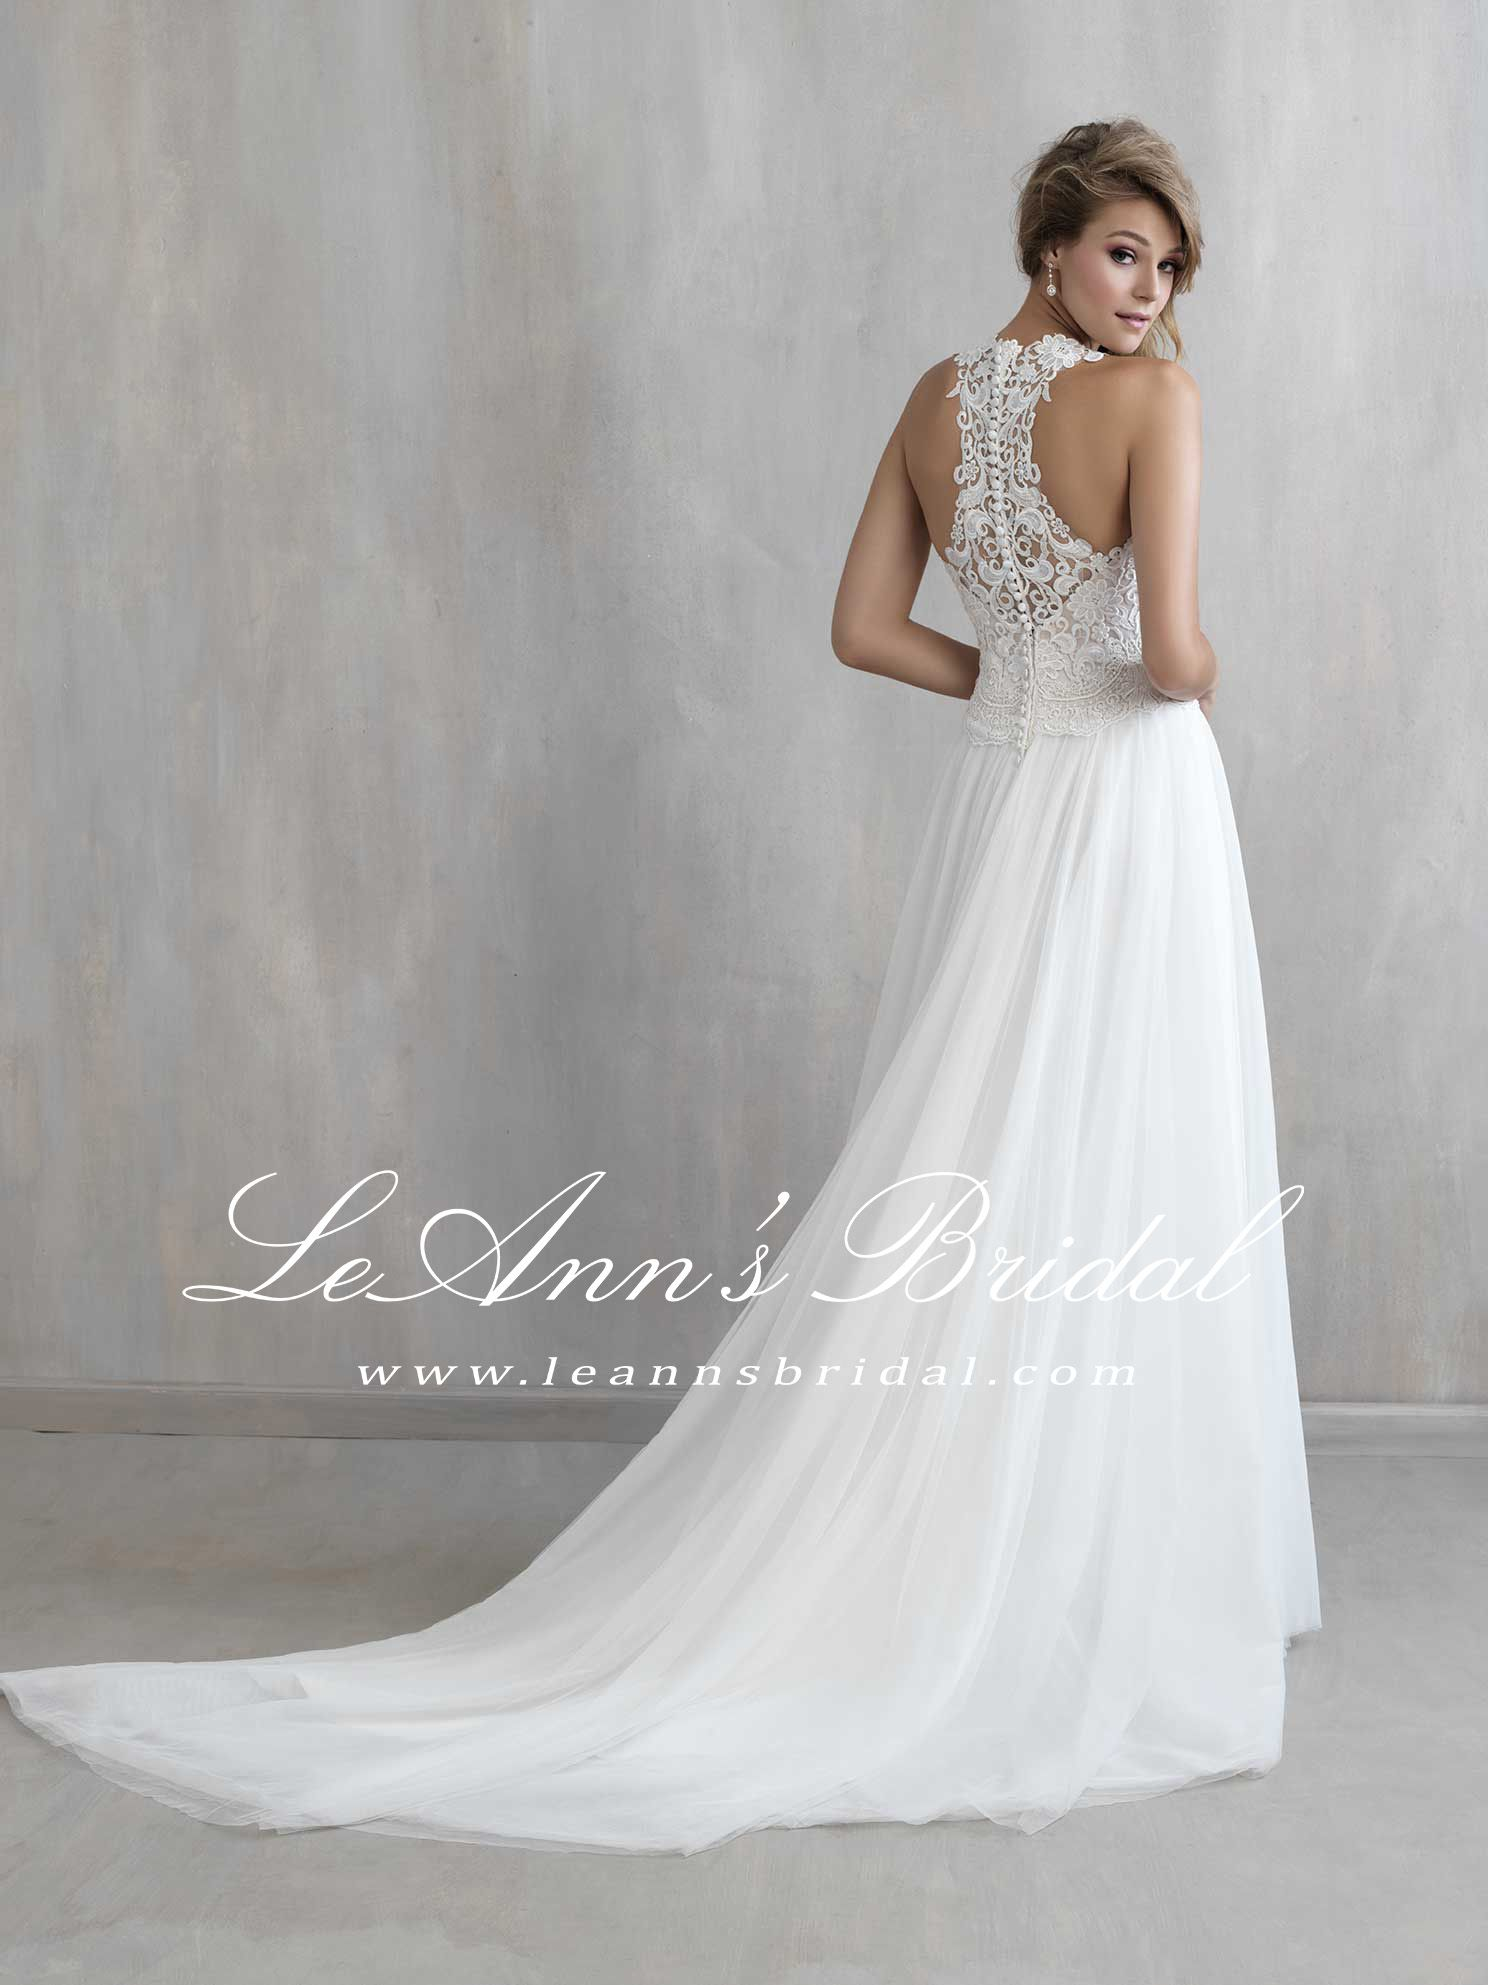 Madison james mj wedding dress the racerback is given an extra